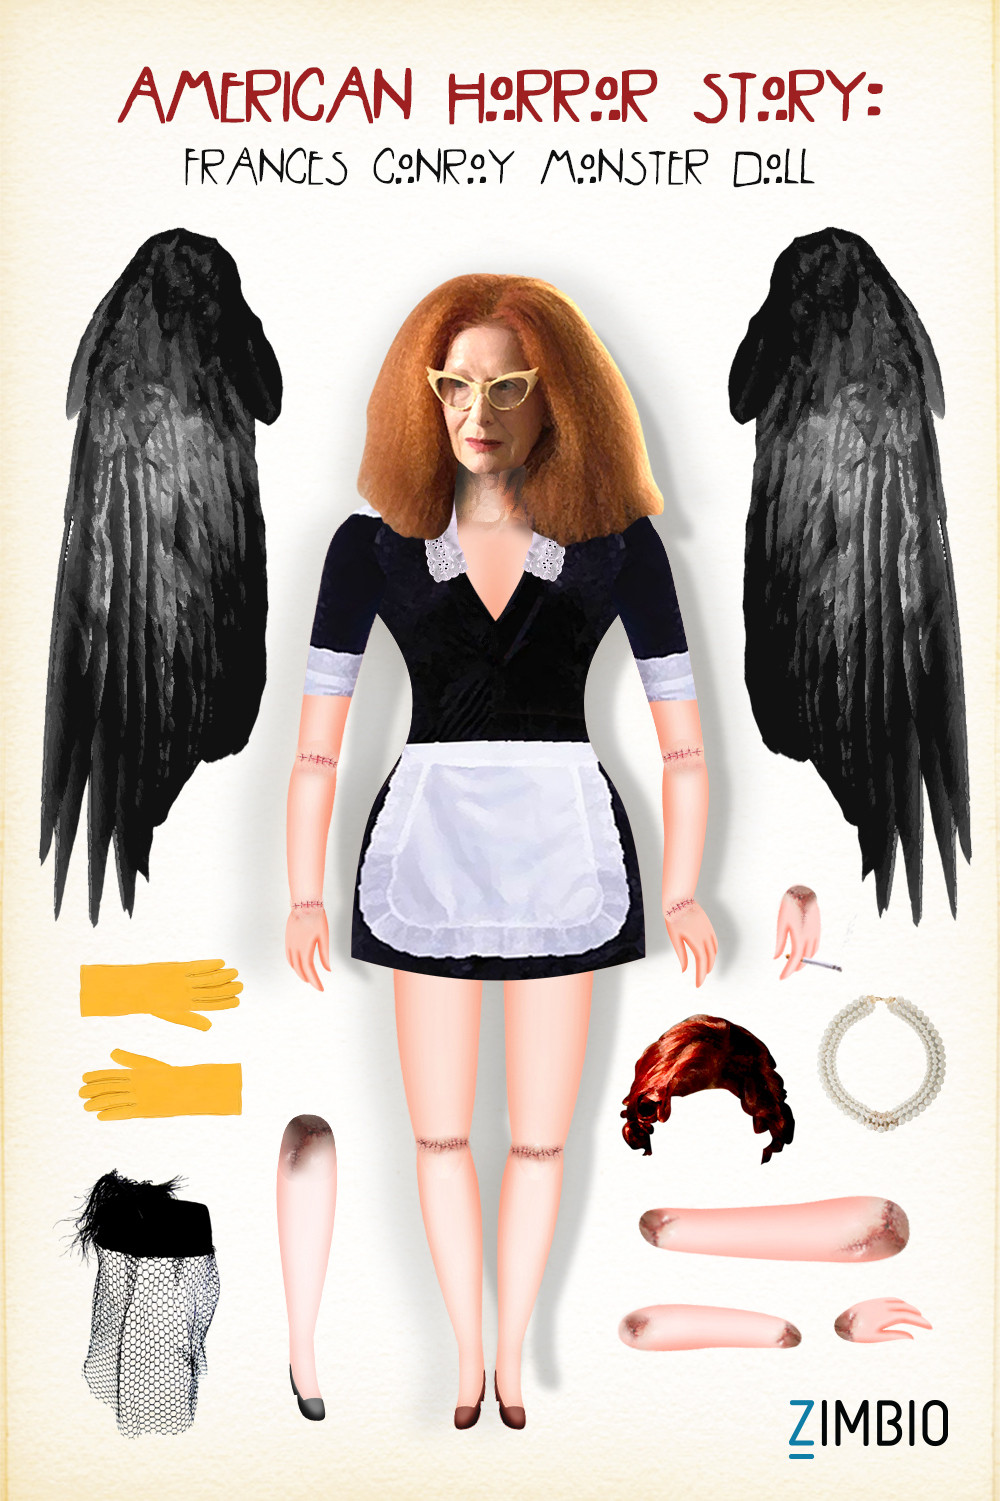 Our Paper Doll Monsters Are Exactly What Every 'American Horror Story' Fan Needs